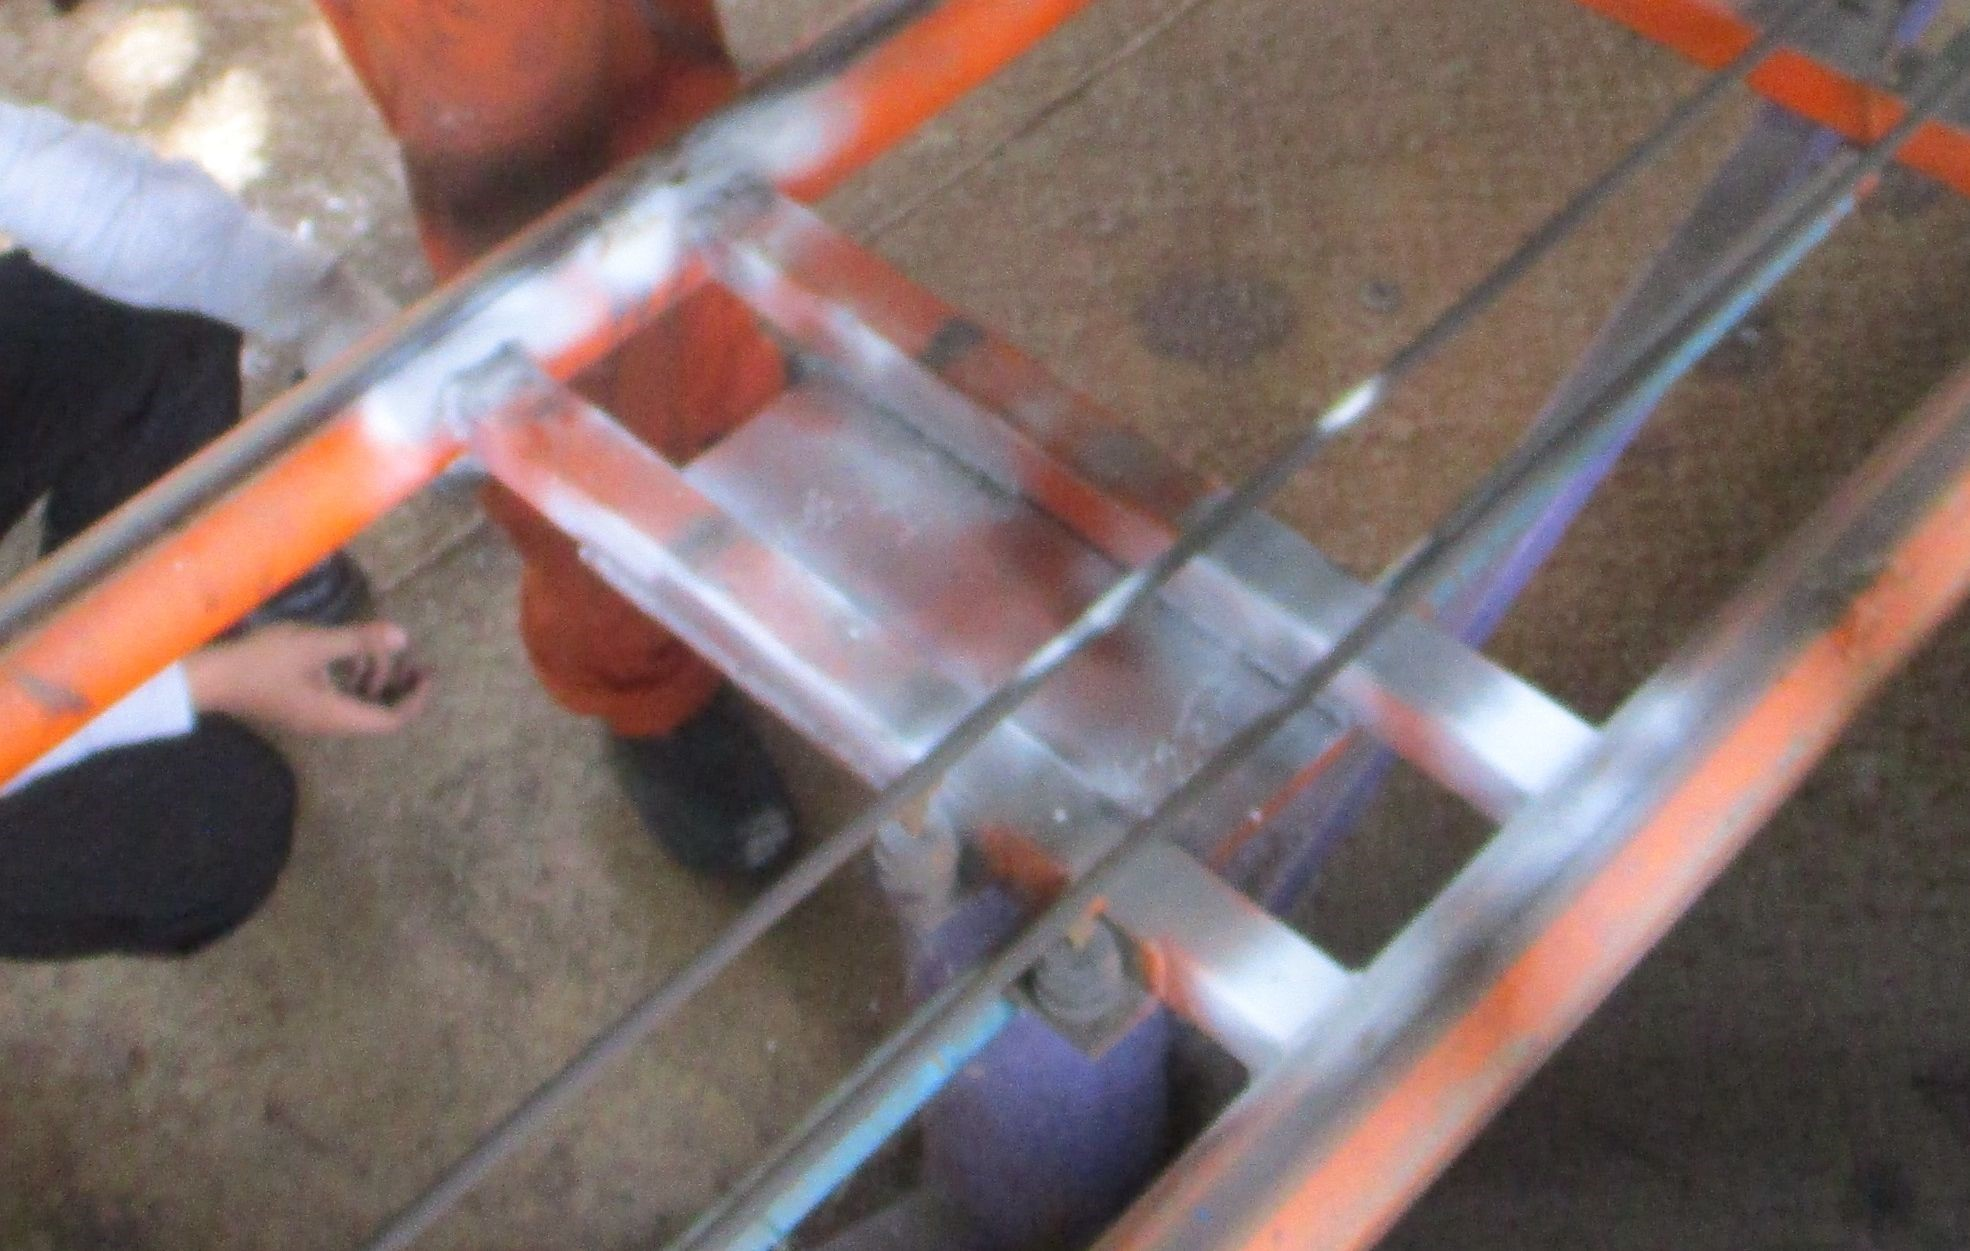 mt inspection on weld joints of support plates  pipes